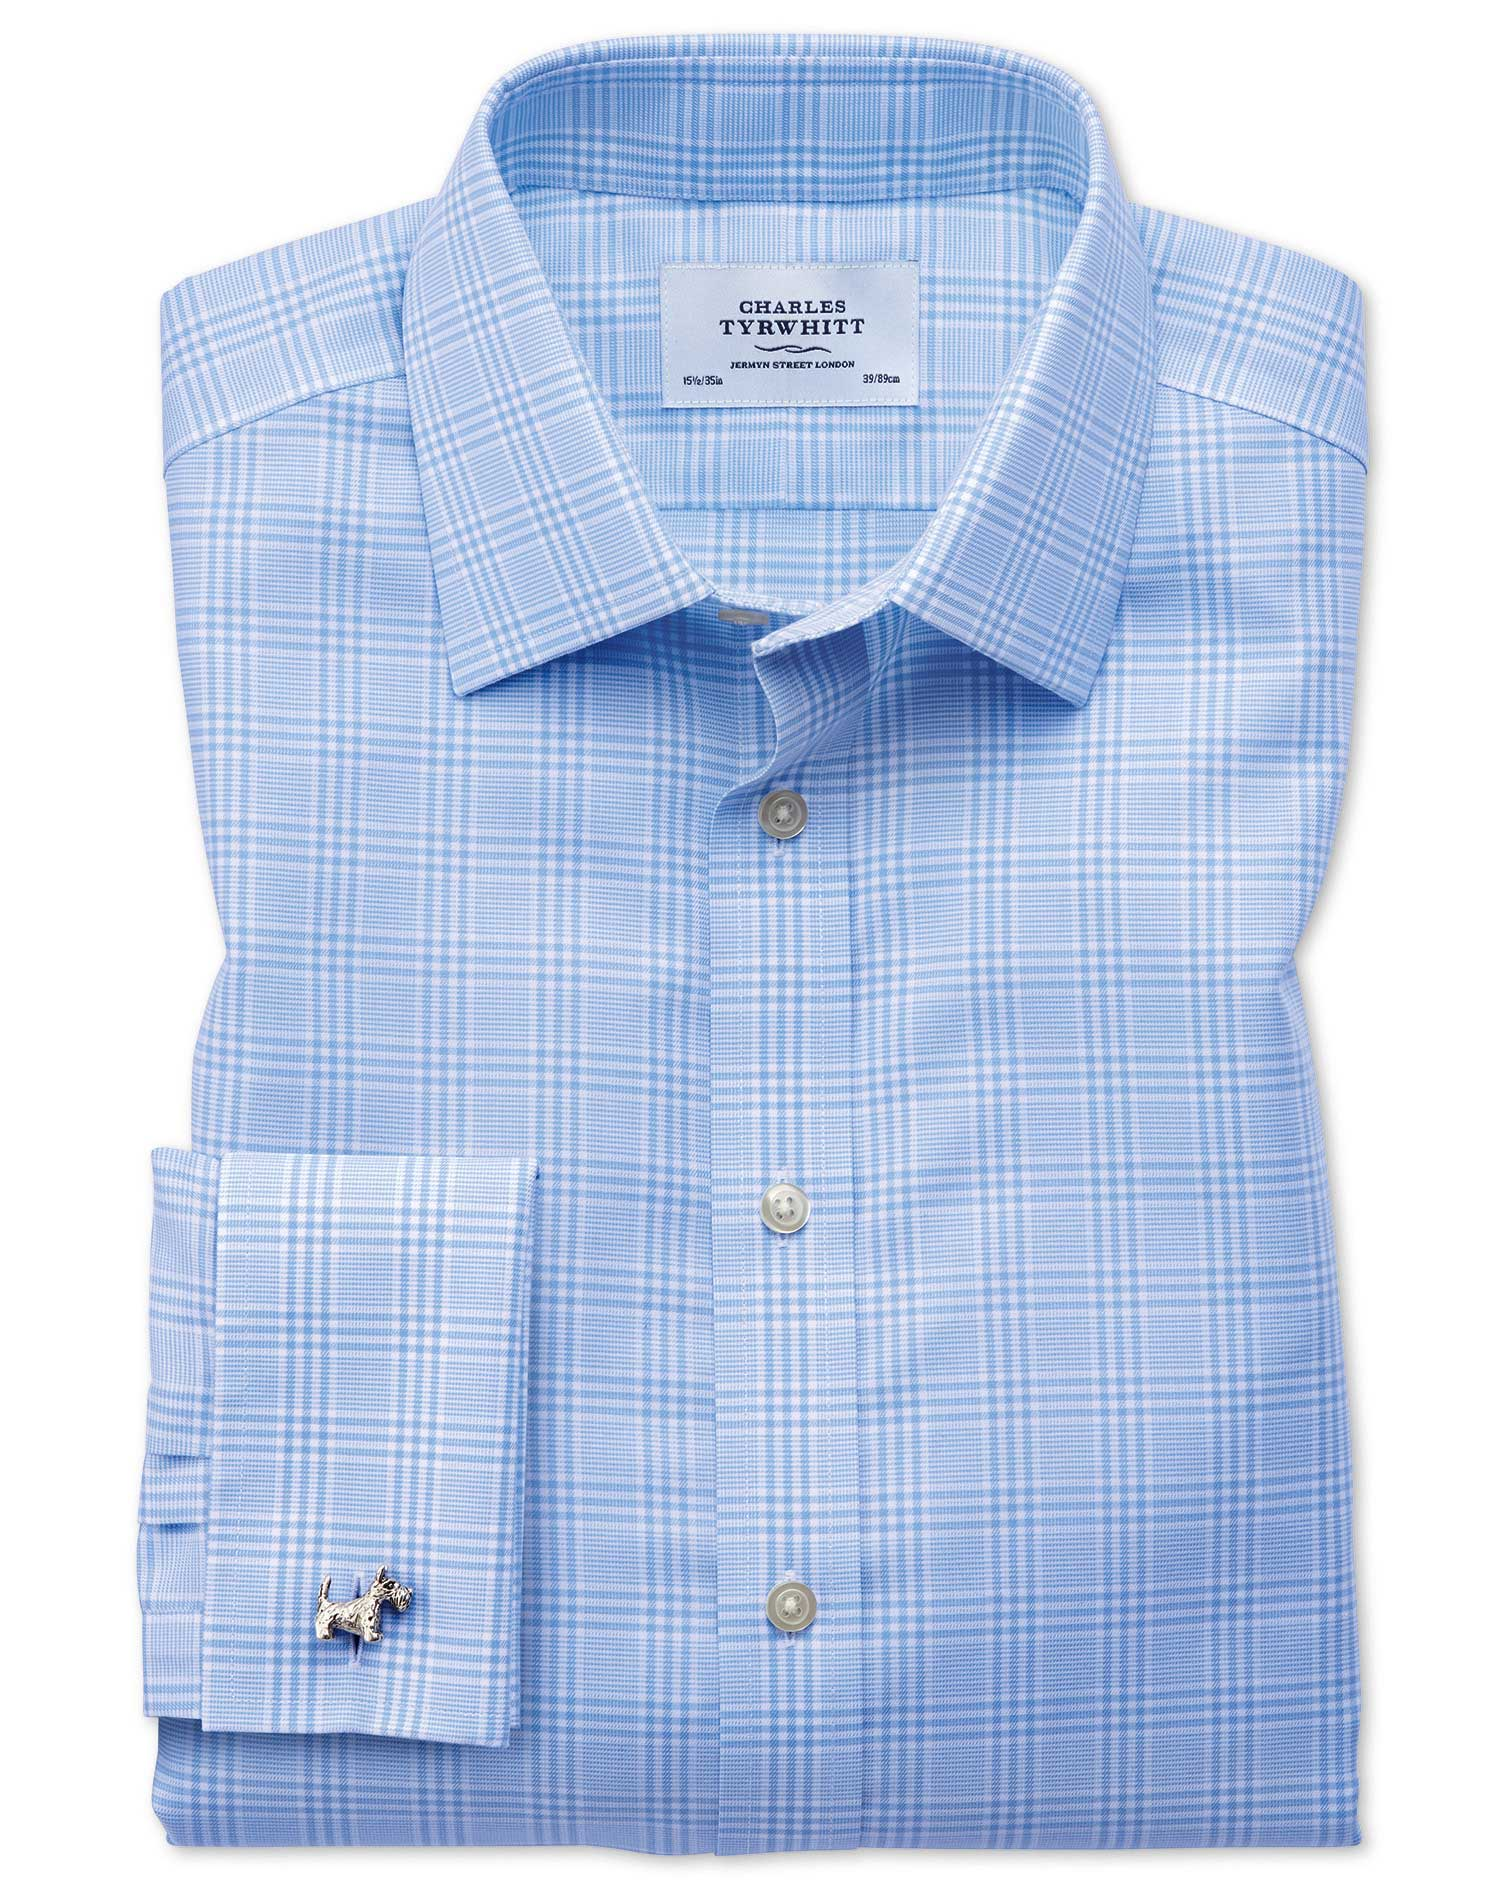 Classic Fit Non-Iron Prince Of Wales Sky Blue Cotton Formal Shirt Double Cuff Size 16.5/34 by Charle